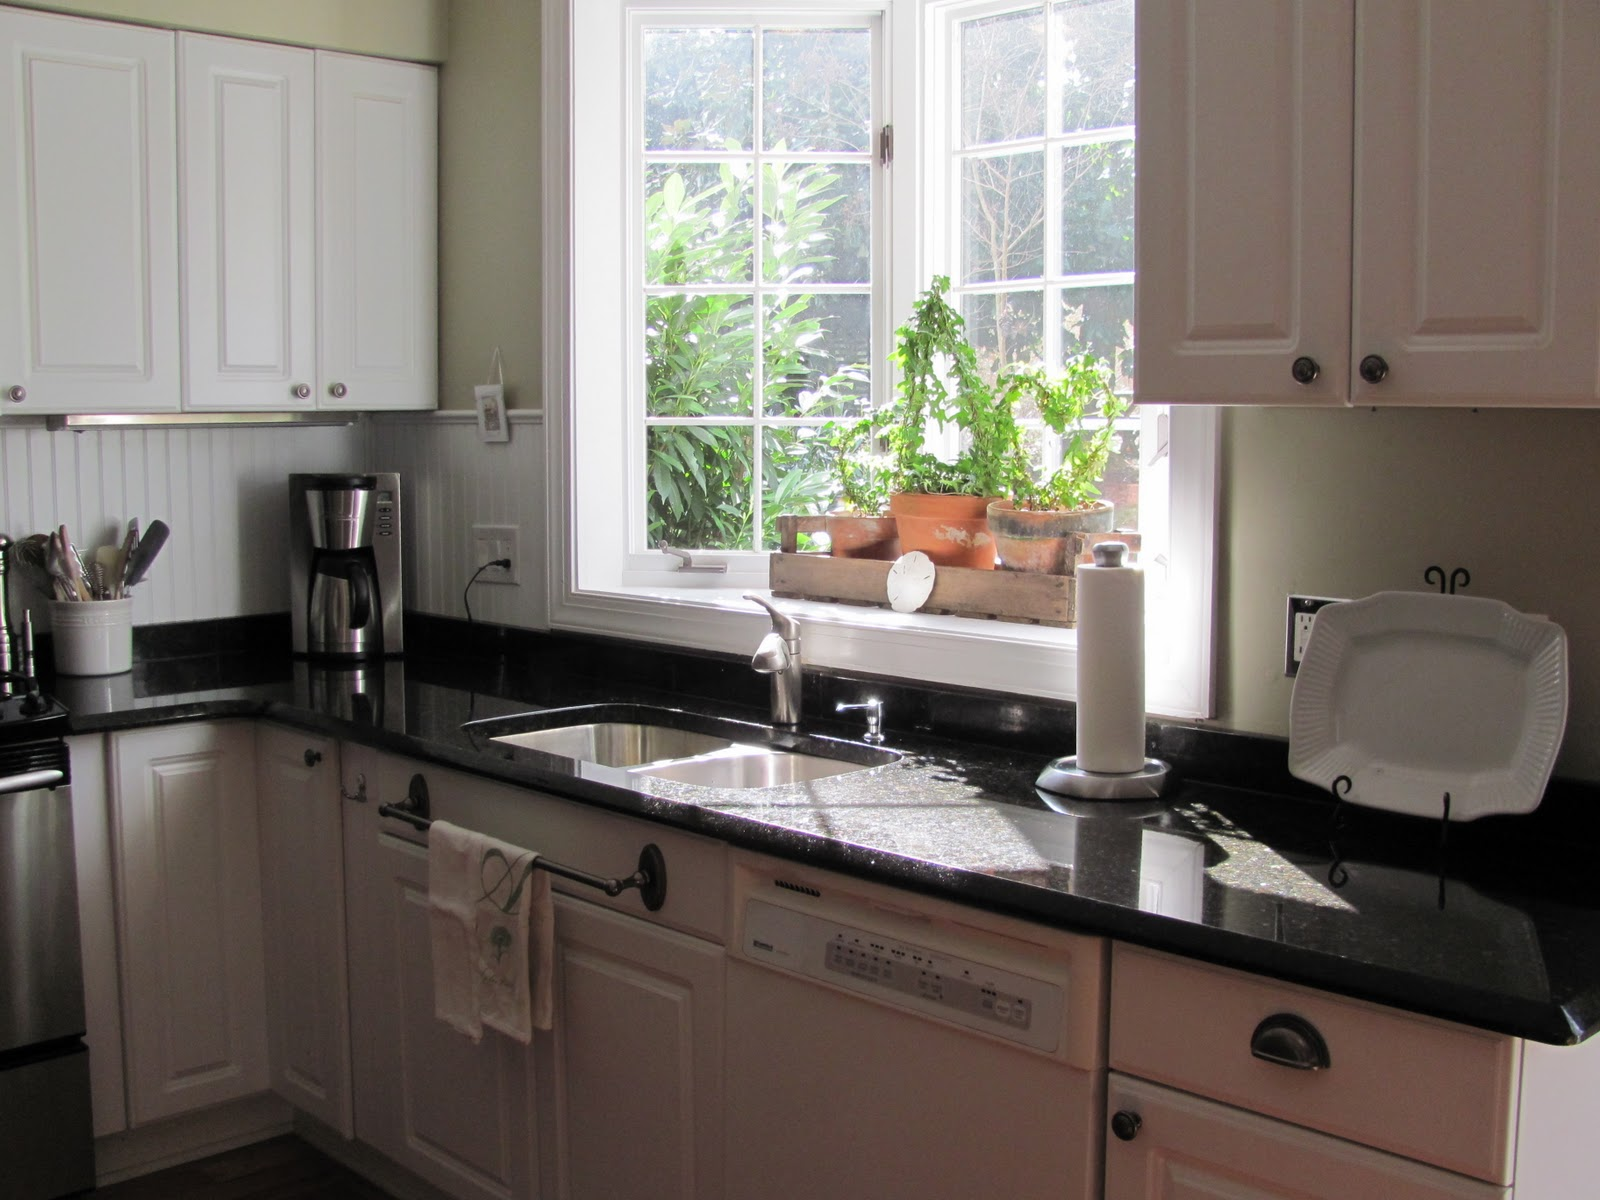 Garden windows for kitchen refreshing part in the kitchen for Kitchen ideas no window